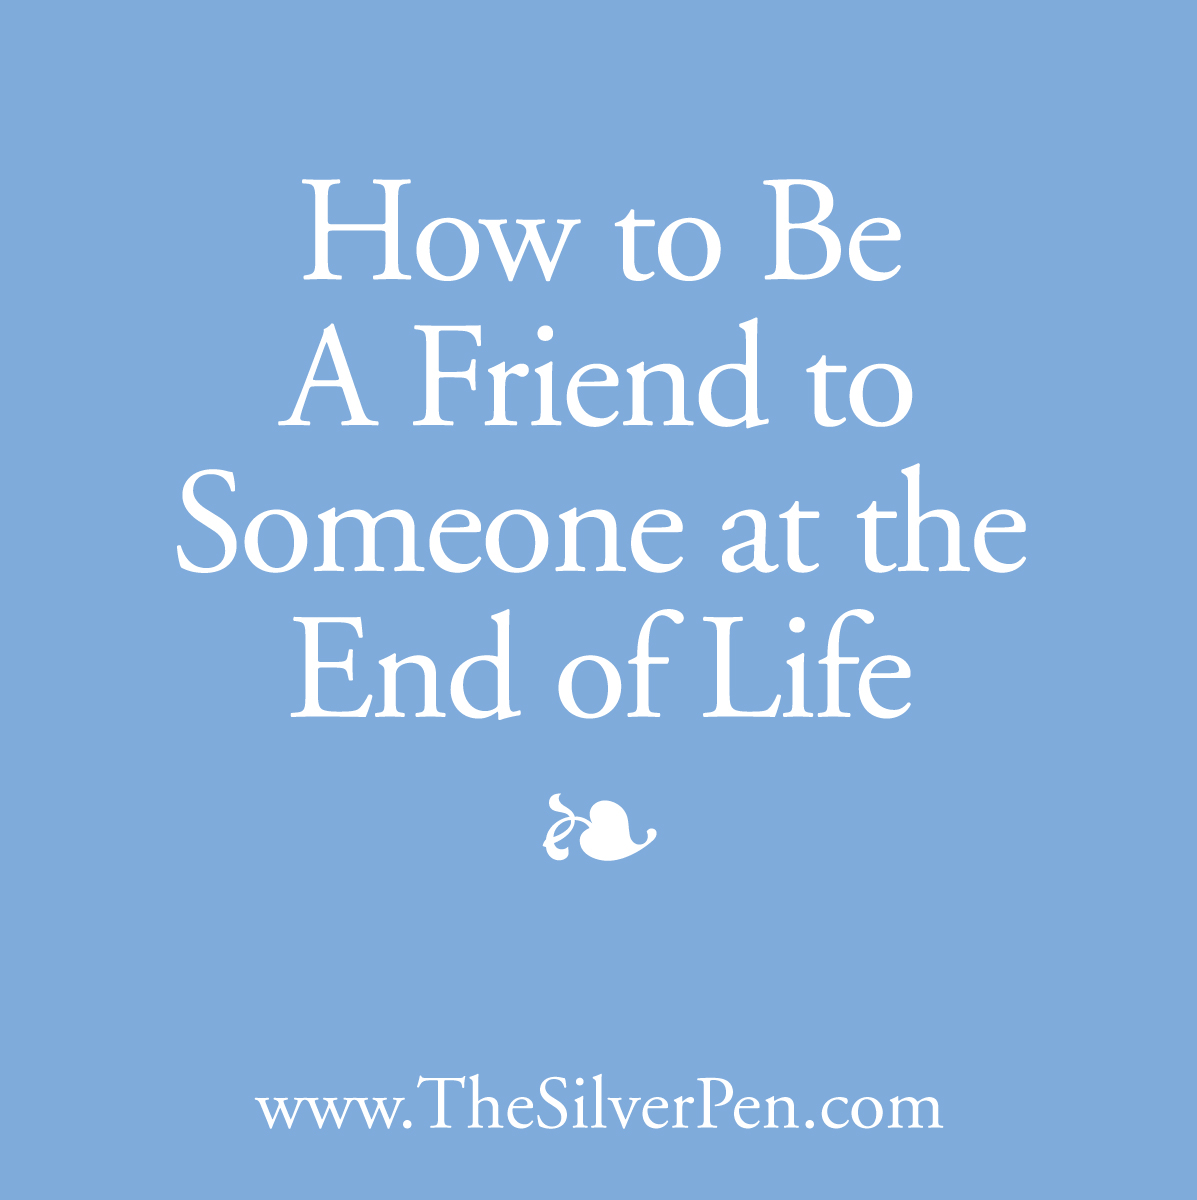 Quotes For Loved Ones Lost To Cancer: Friend Dying Of Cancer Quotes. QuotesGram